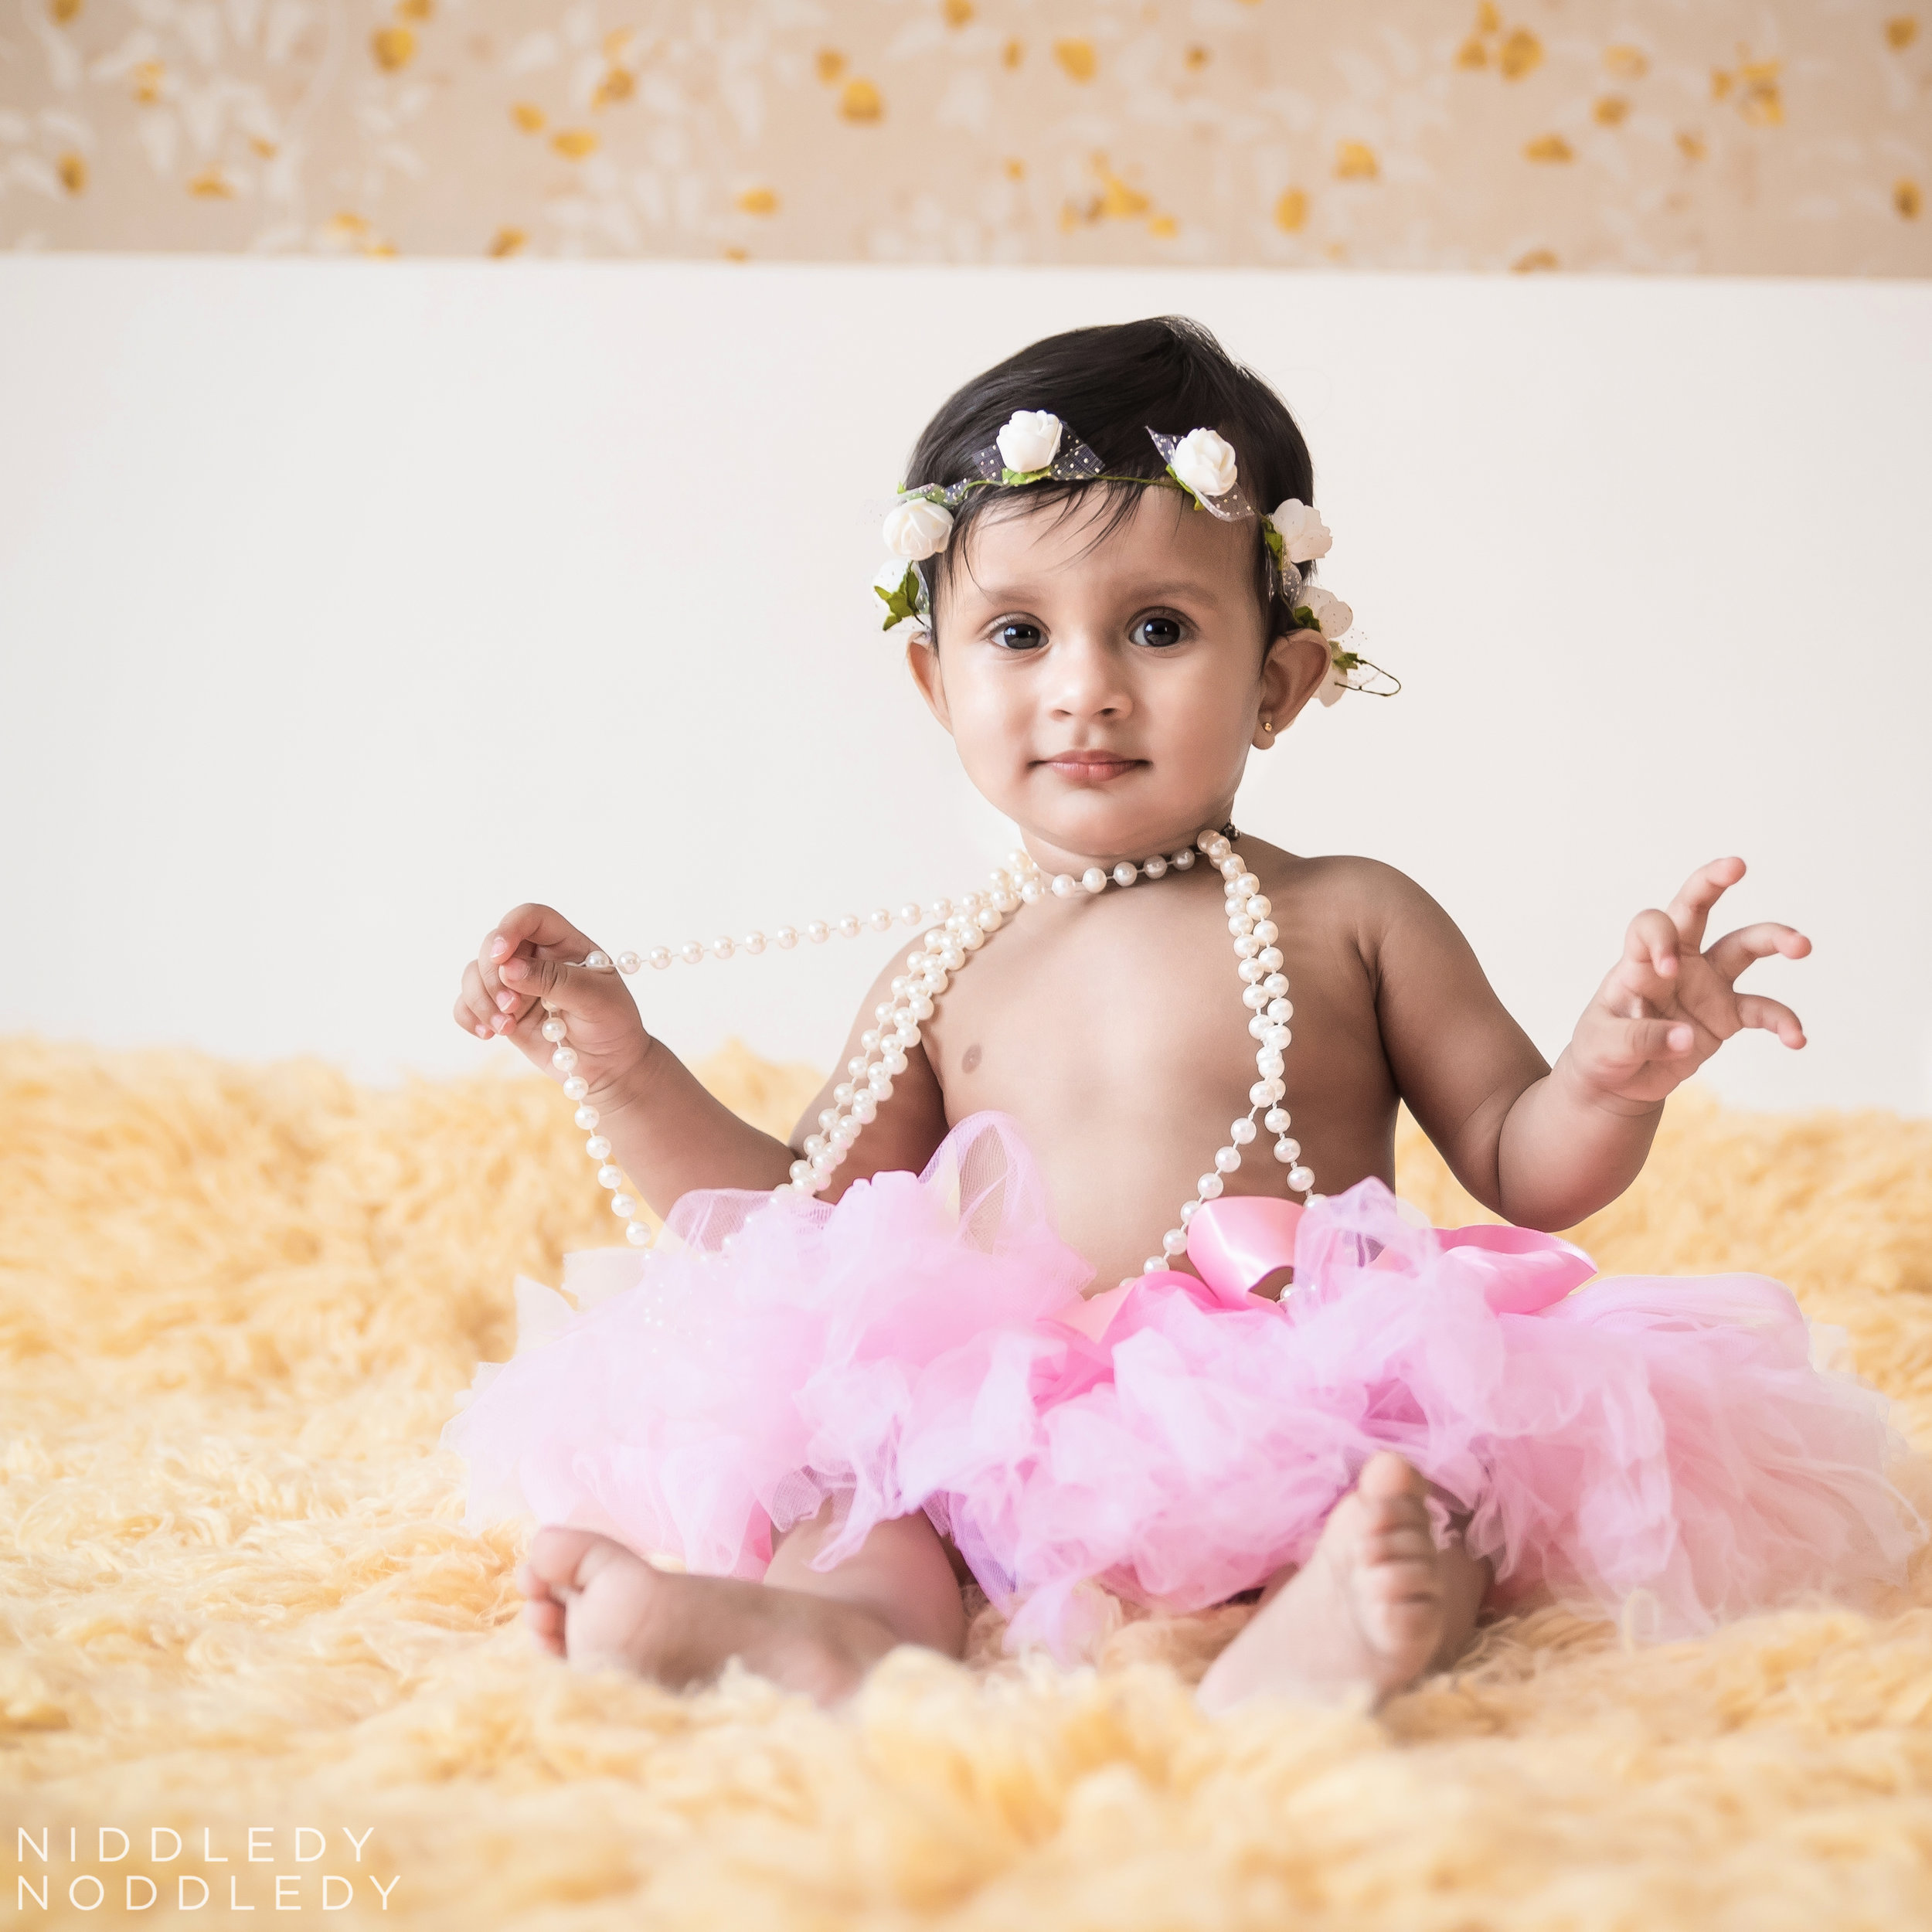 Anaisha Baby Photoshoot ❤ NiddledyNoddledy.com ~ Bumps to Babies Photography, Kolkata - 131.jpg